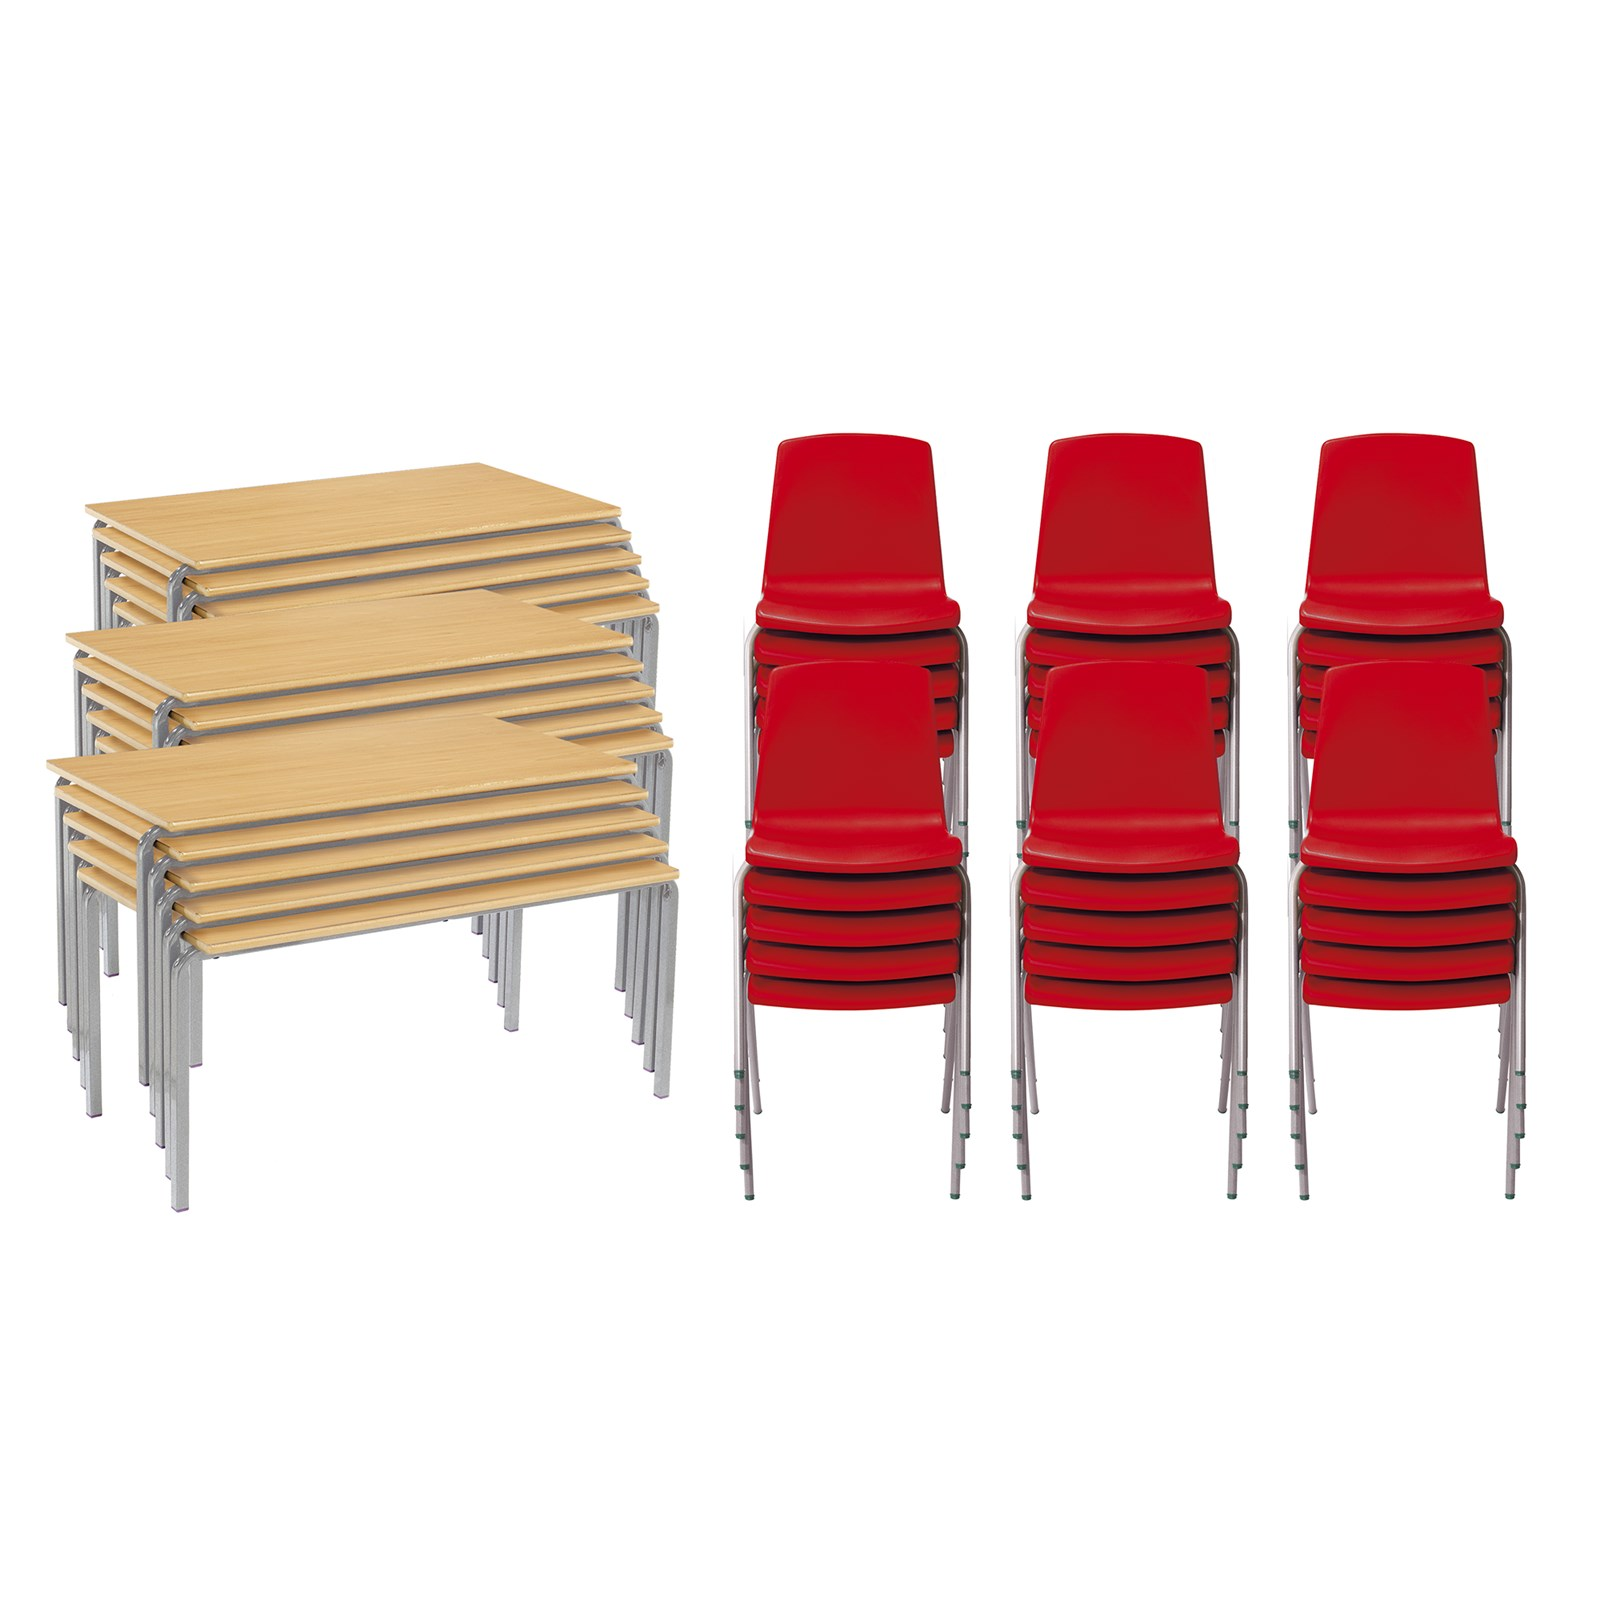 CM 15FW Bch Tables 30 Red Chairs 11-14yr